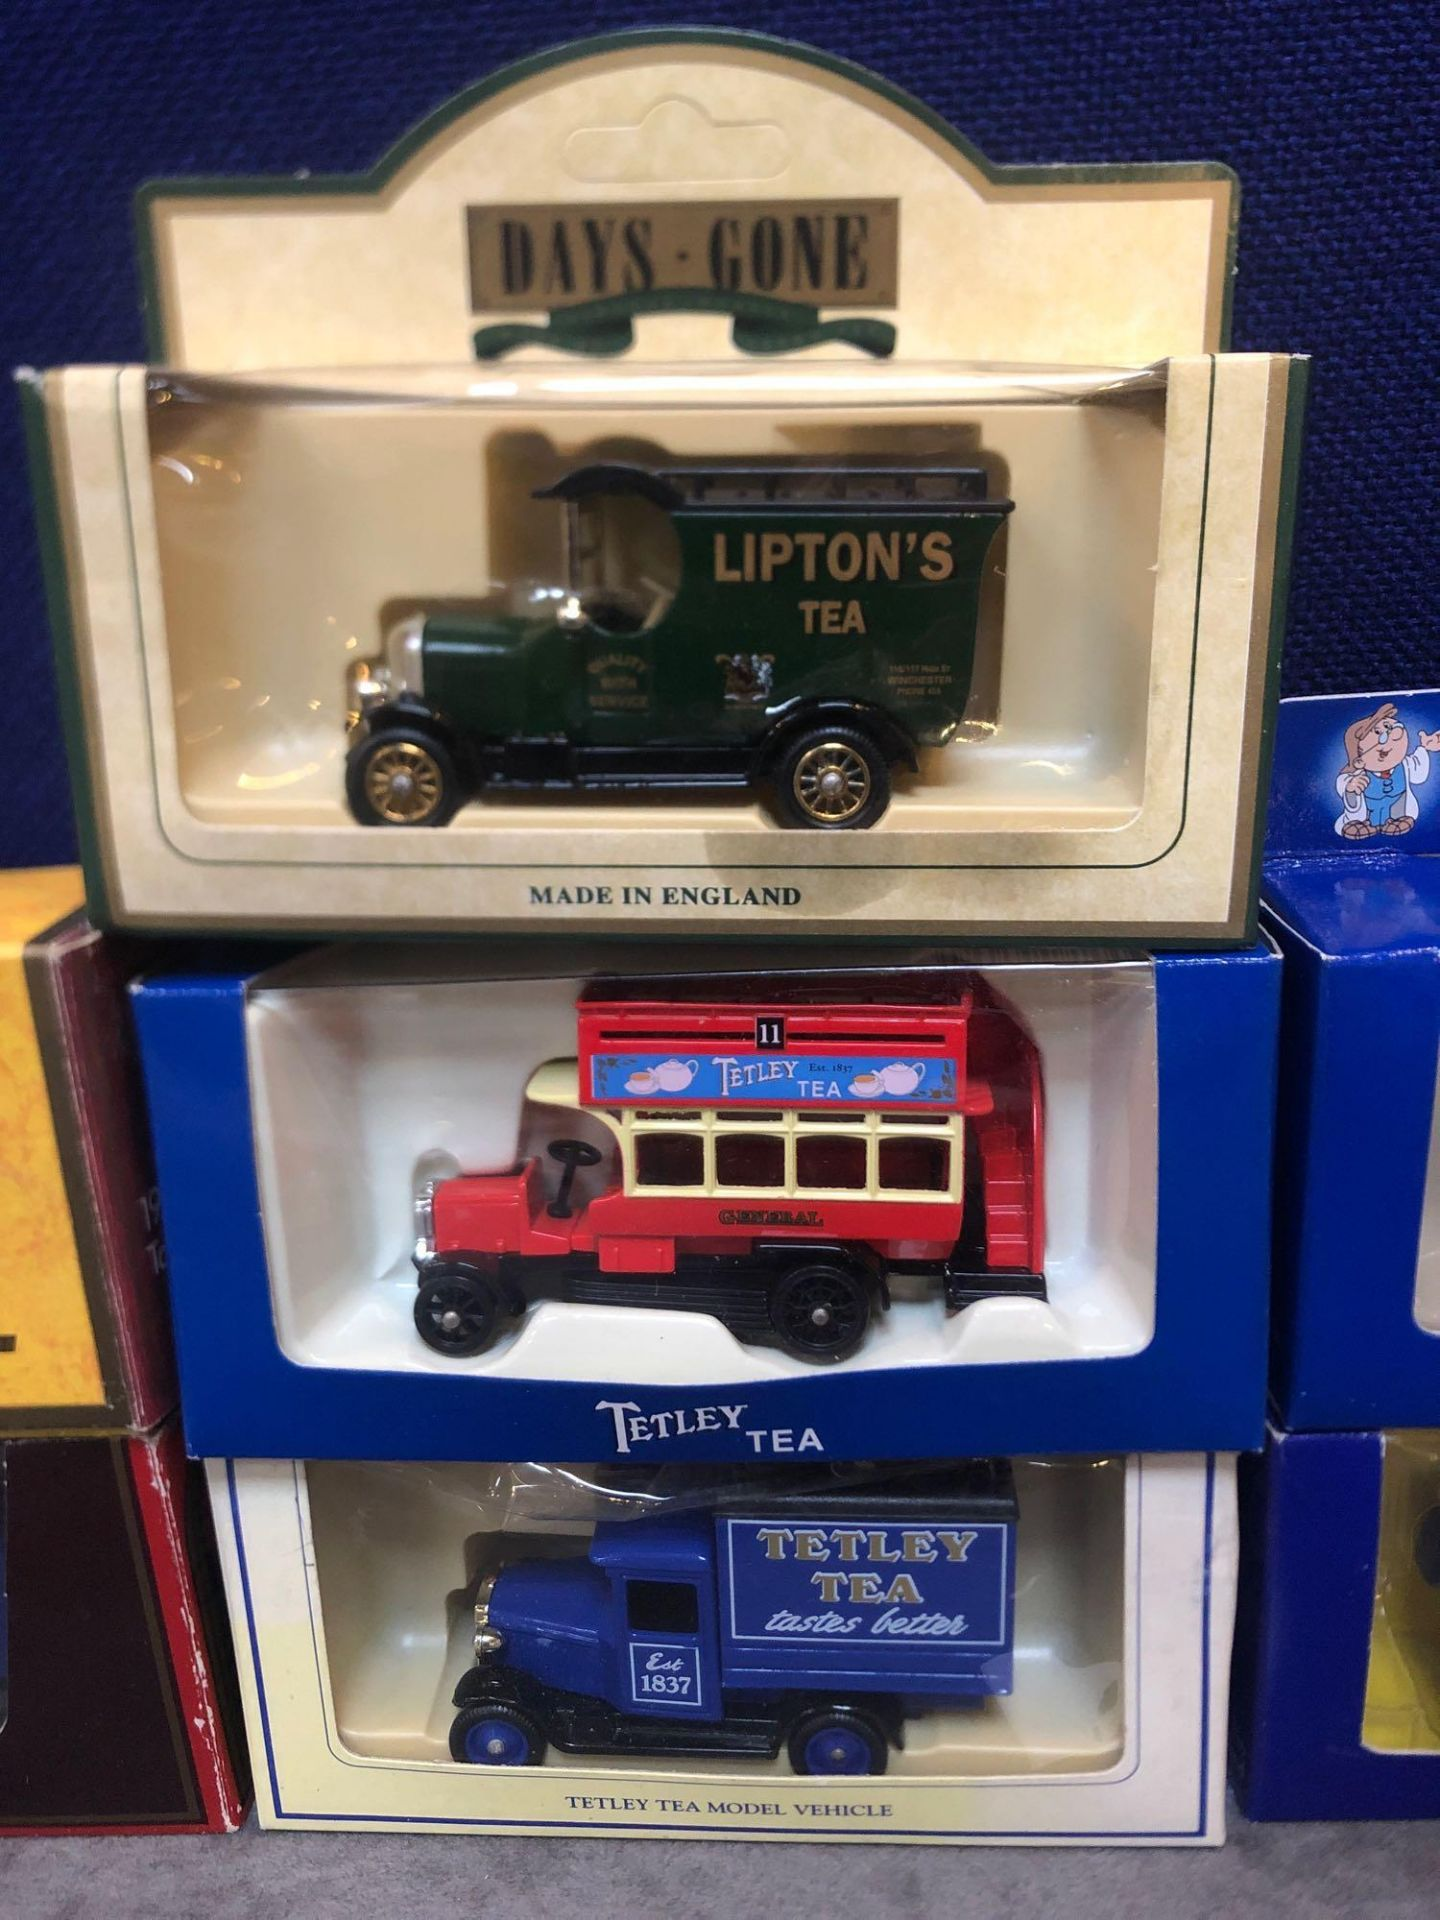 7x Diecast Vehicles Advertising Tea, All In Individual Boxes - Image 3 of 4